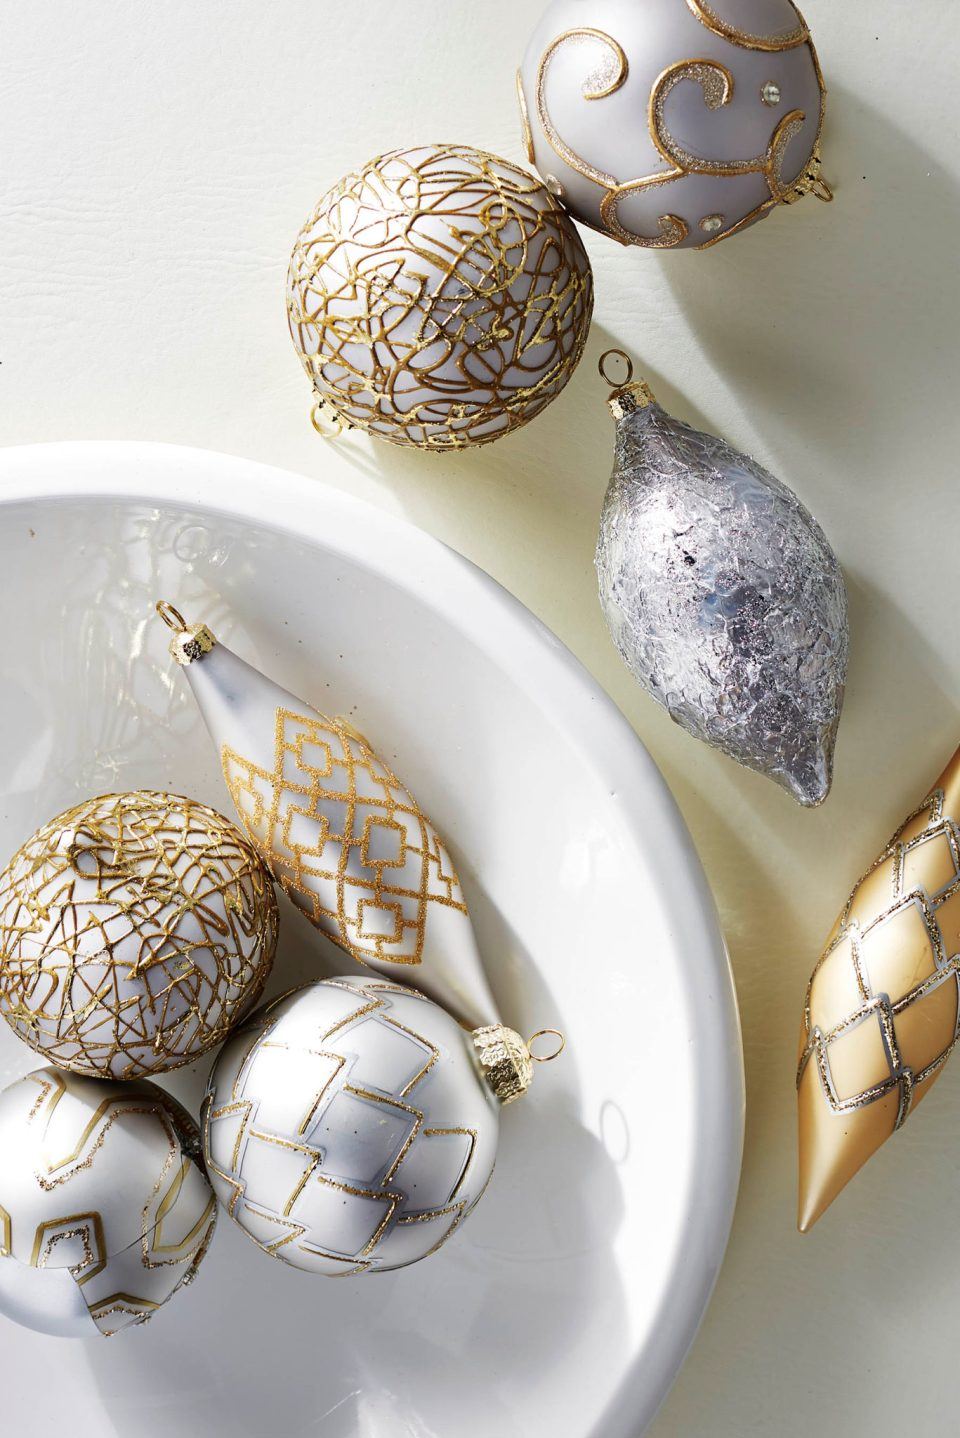 151774_002-960x1438 Holiday Ornaments We Love and How to Store Your Holiday Decor